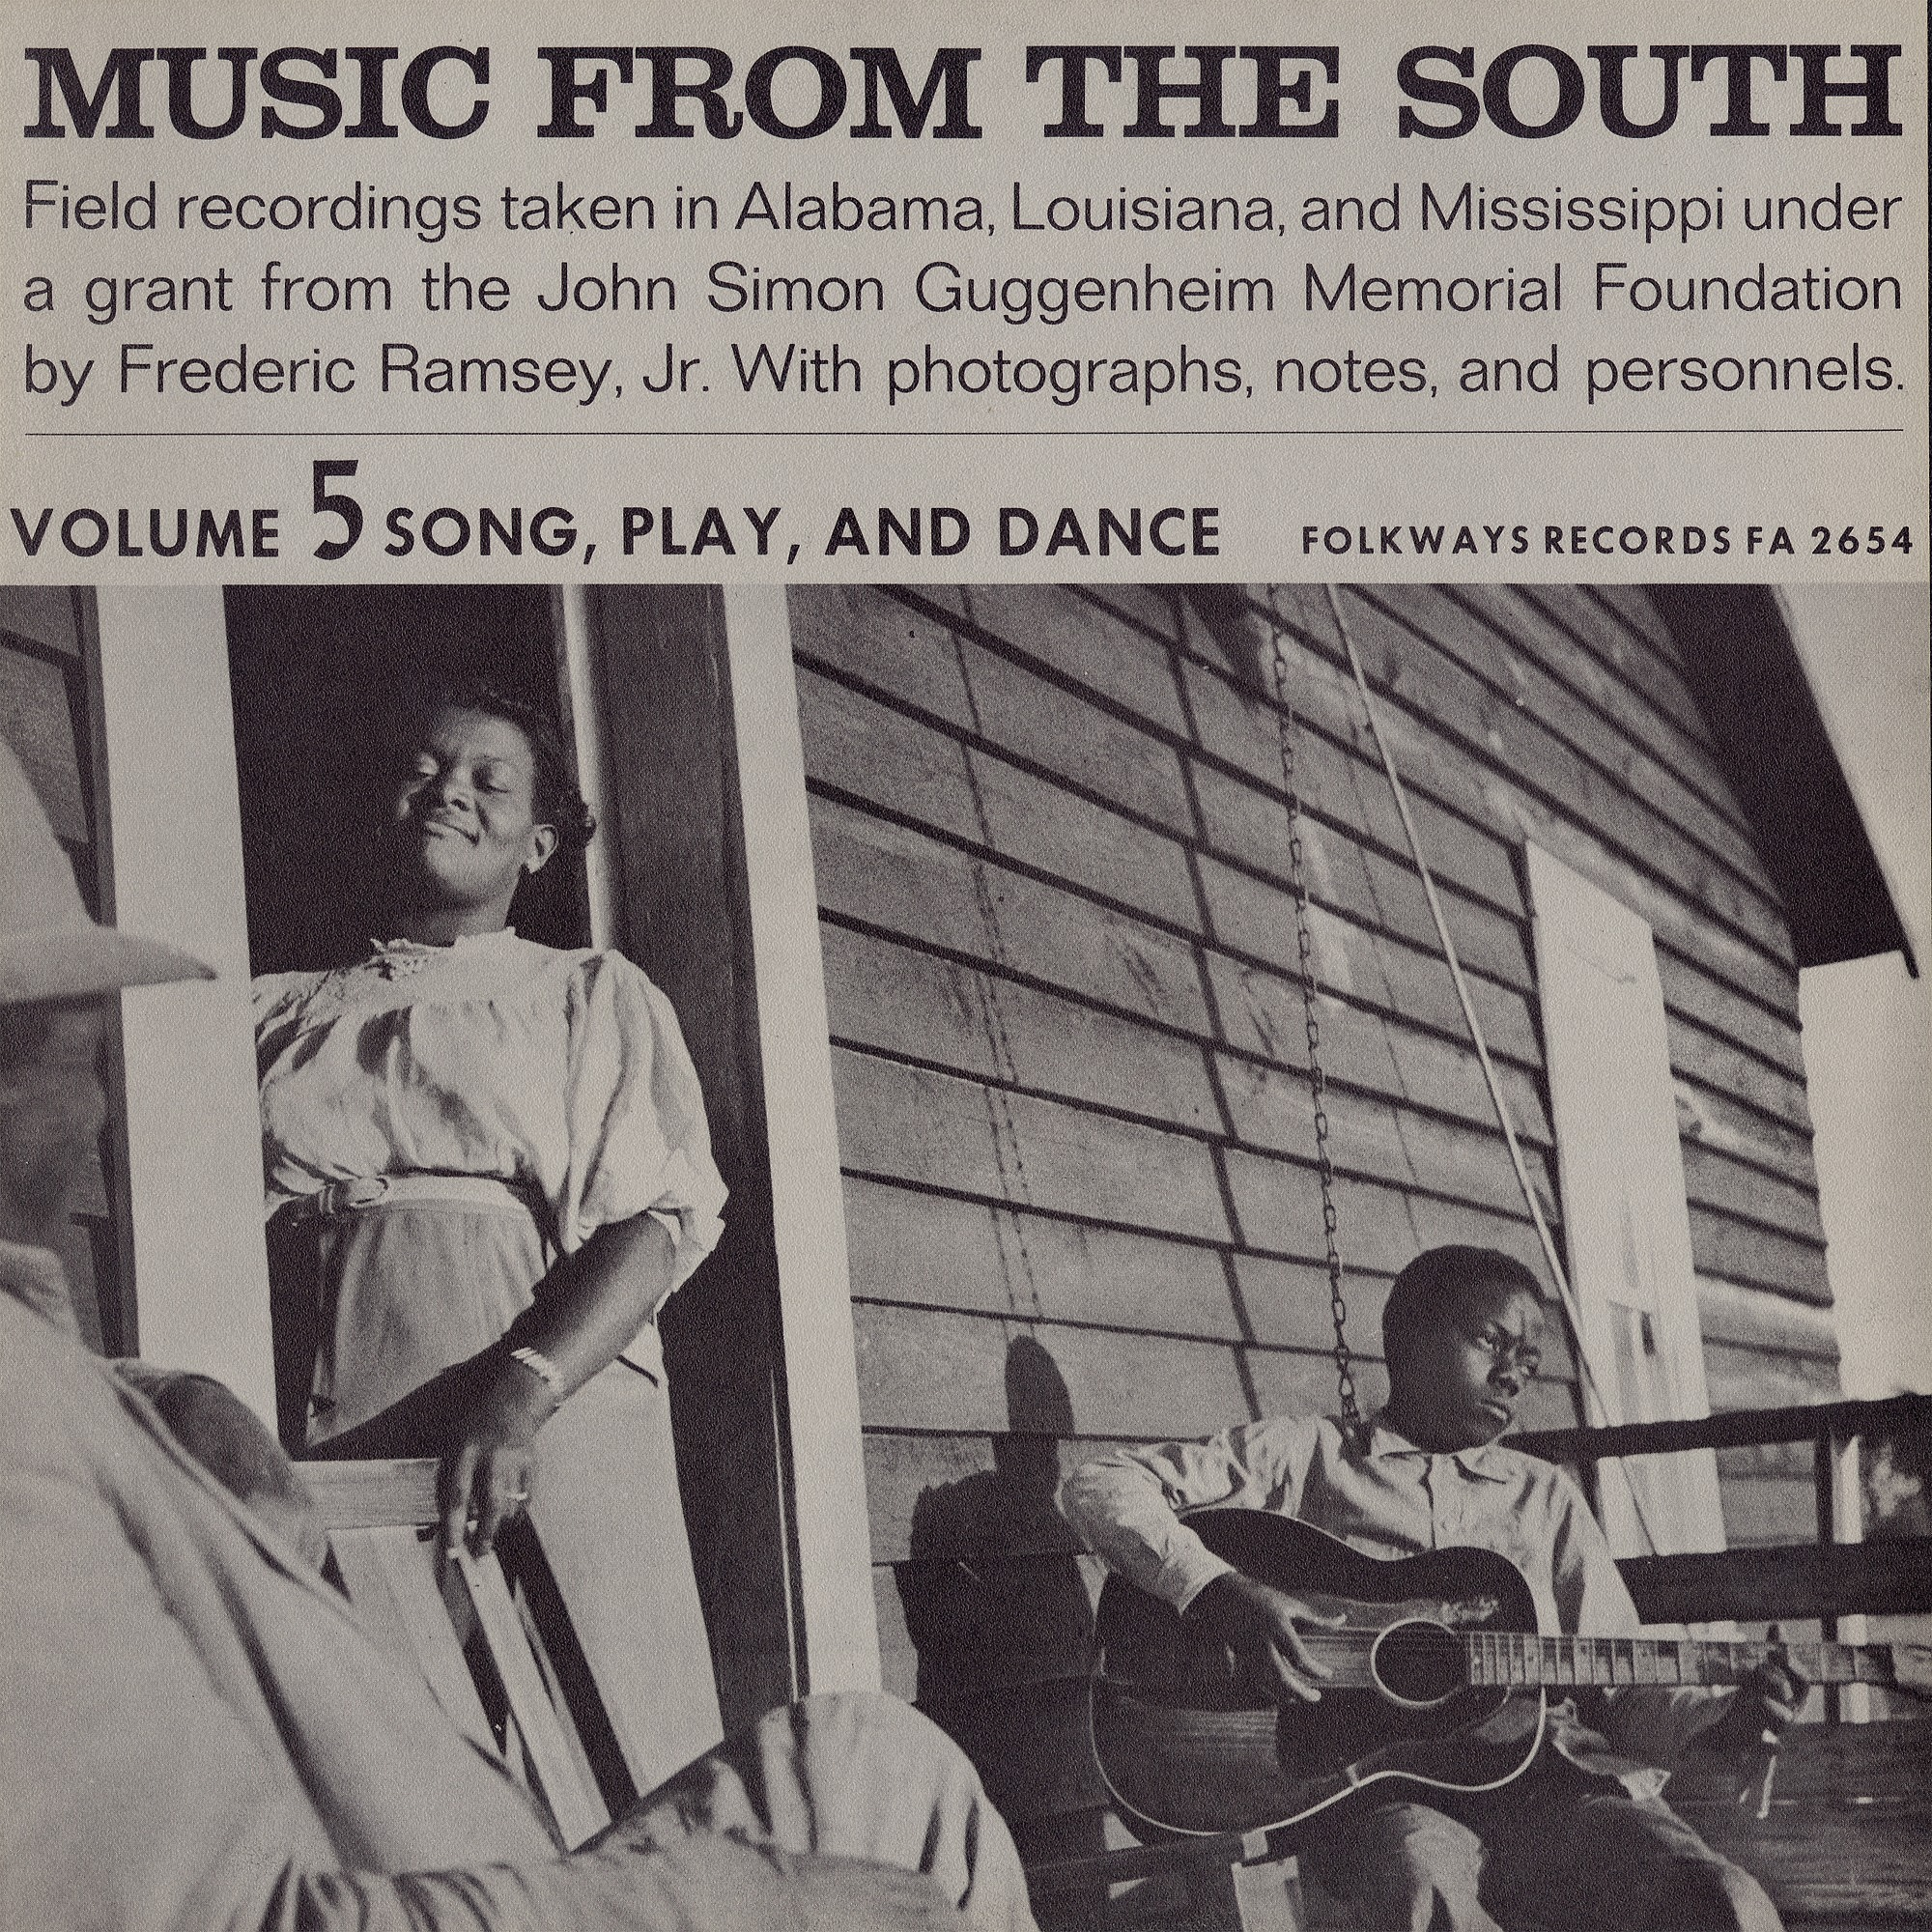 Music from the South. Vol. 5 sound recording : song, play, and dance / recordings taken by Frederic Ramsey, Jr